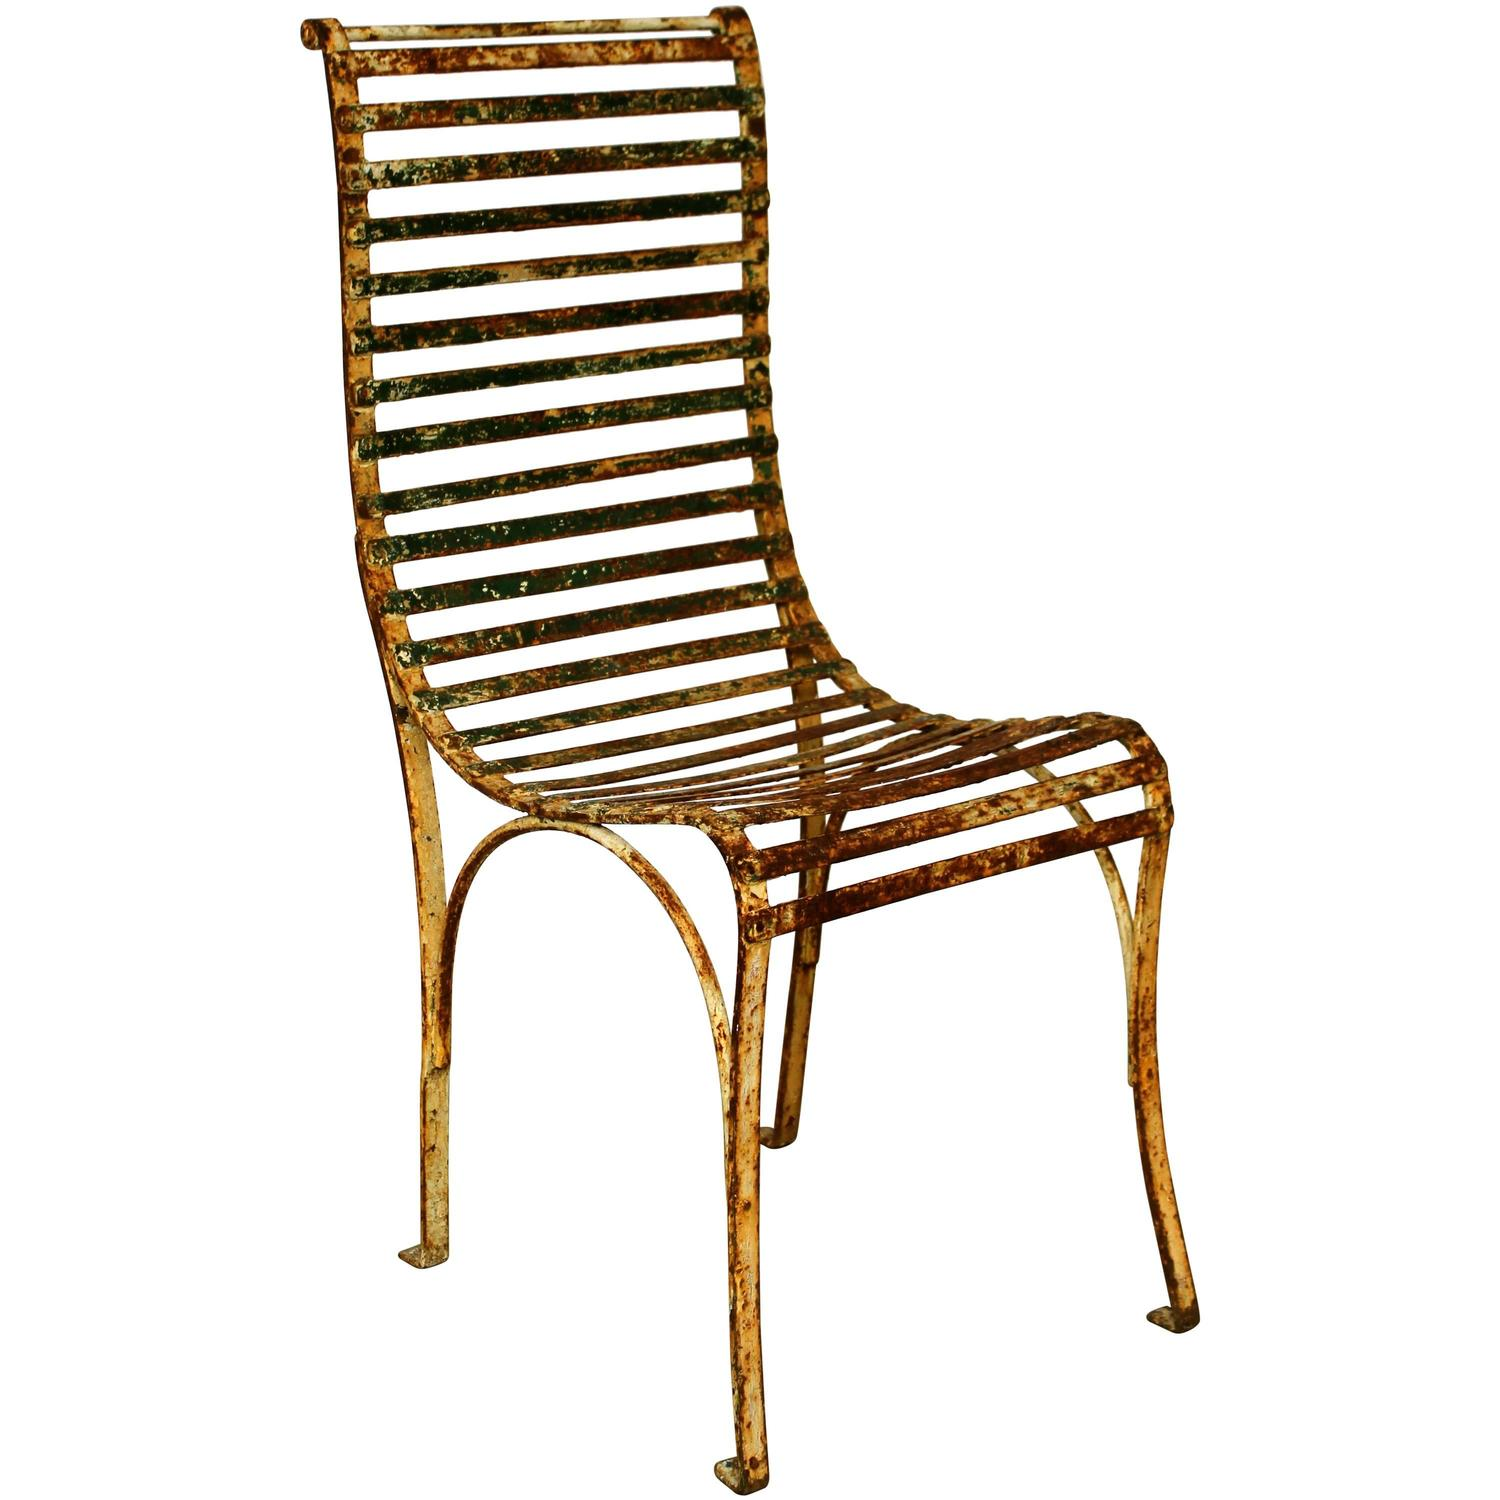 single french garden chair for sale at 1stdibs